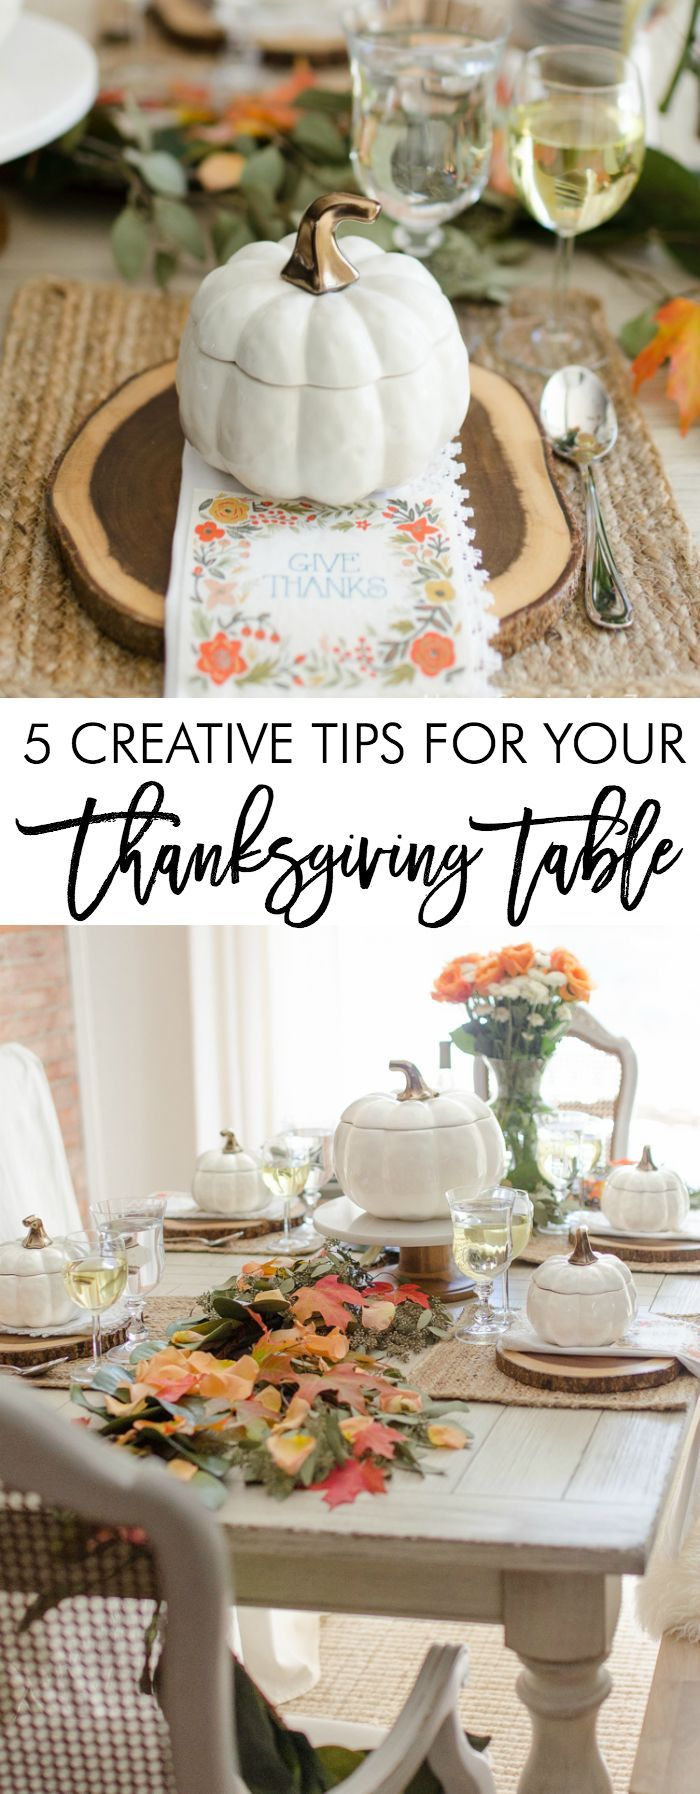 5 Thanksgiving table tips featuring sponsored products by Better Homes and Gardens at Walmart.